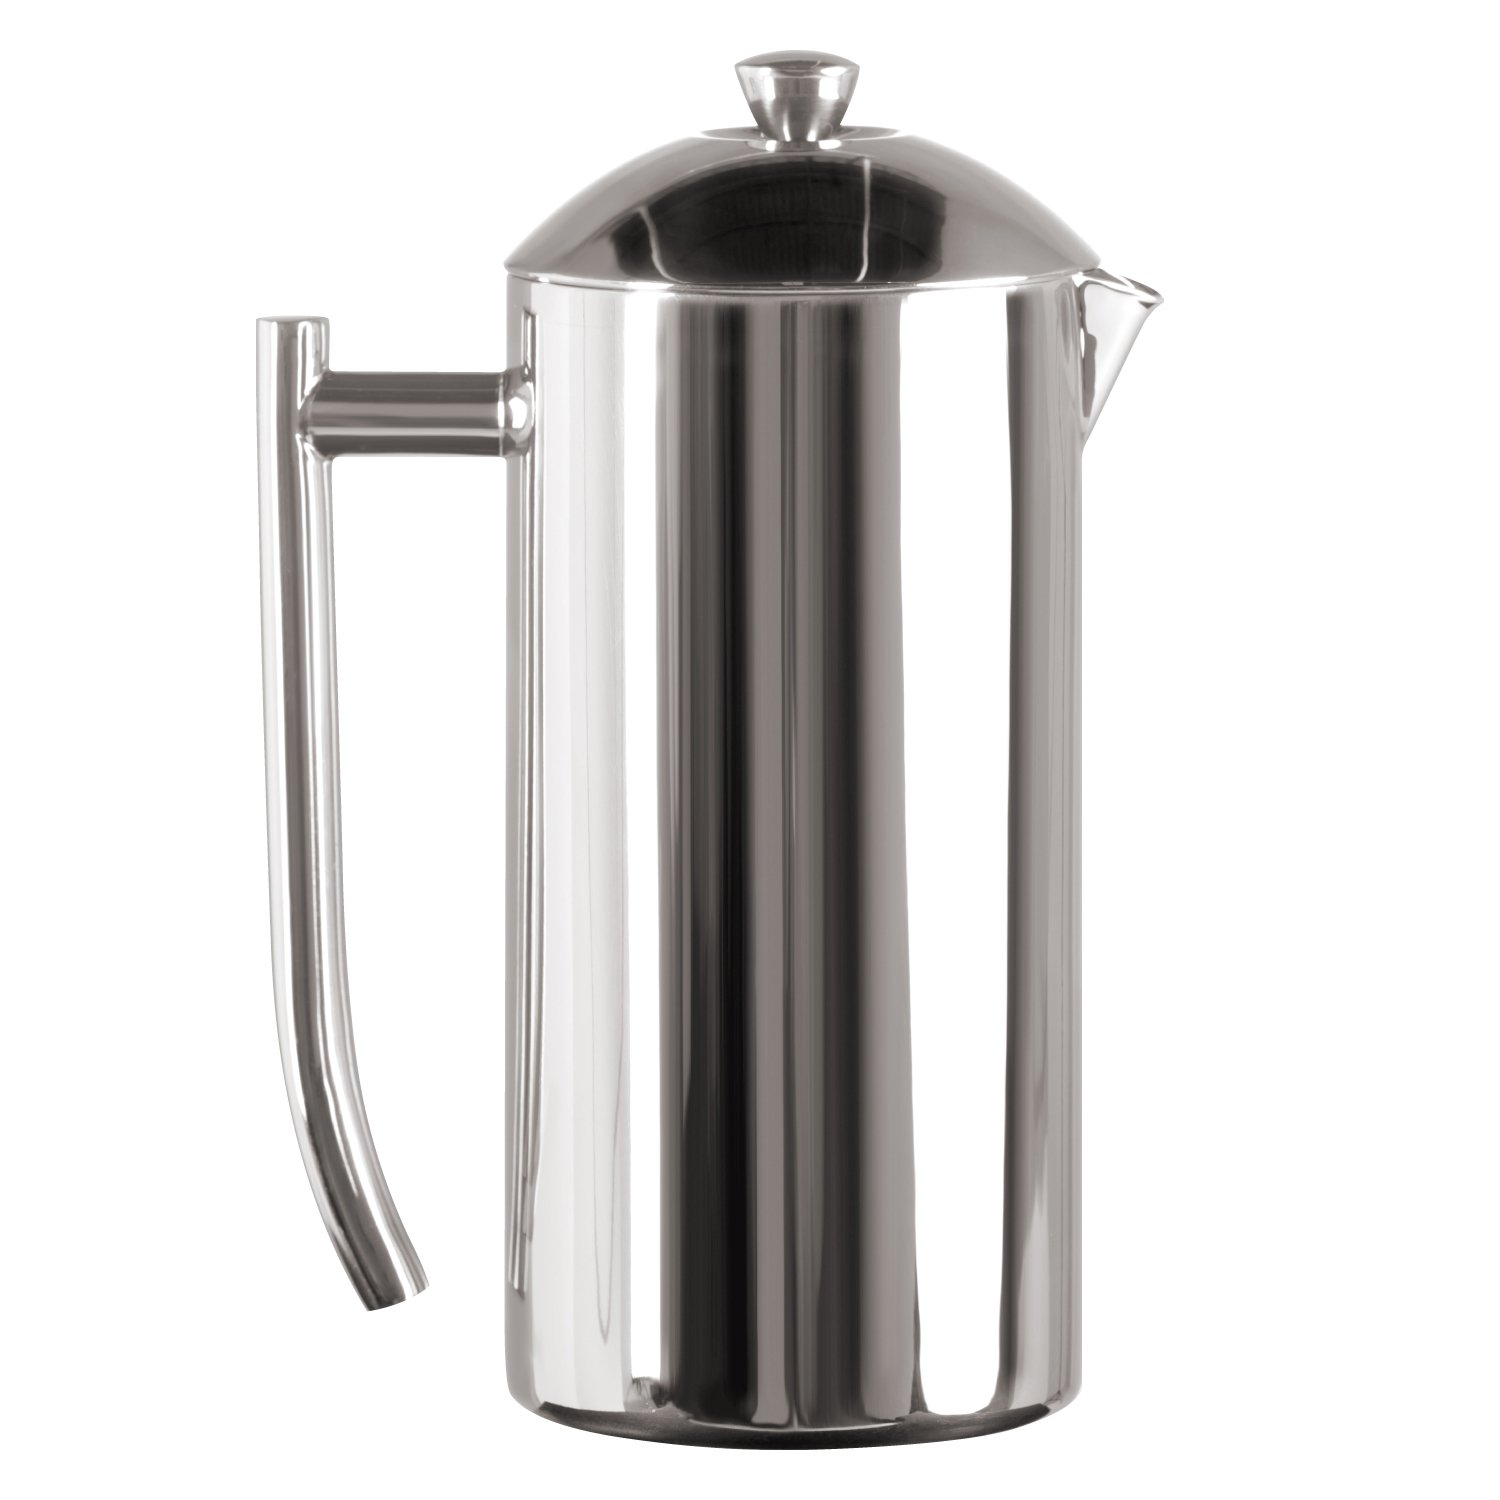 Frieling USA Double Wall Stainless Steel French Press Coffee Maker with Patented Dual Screen